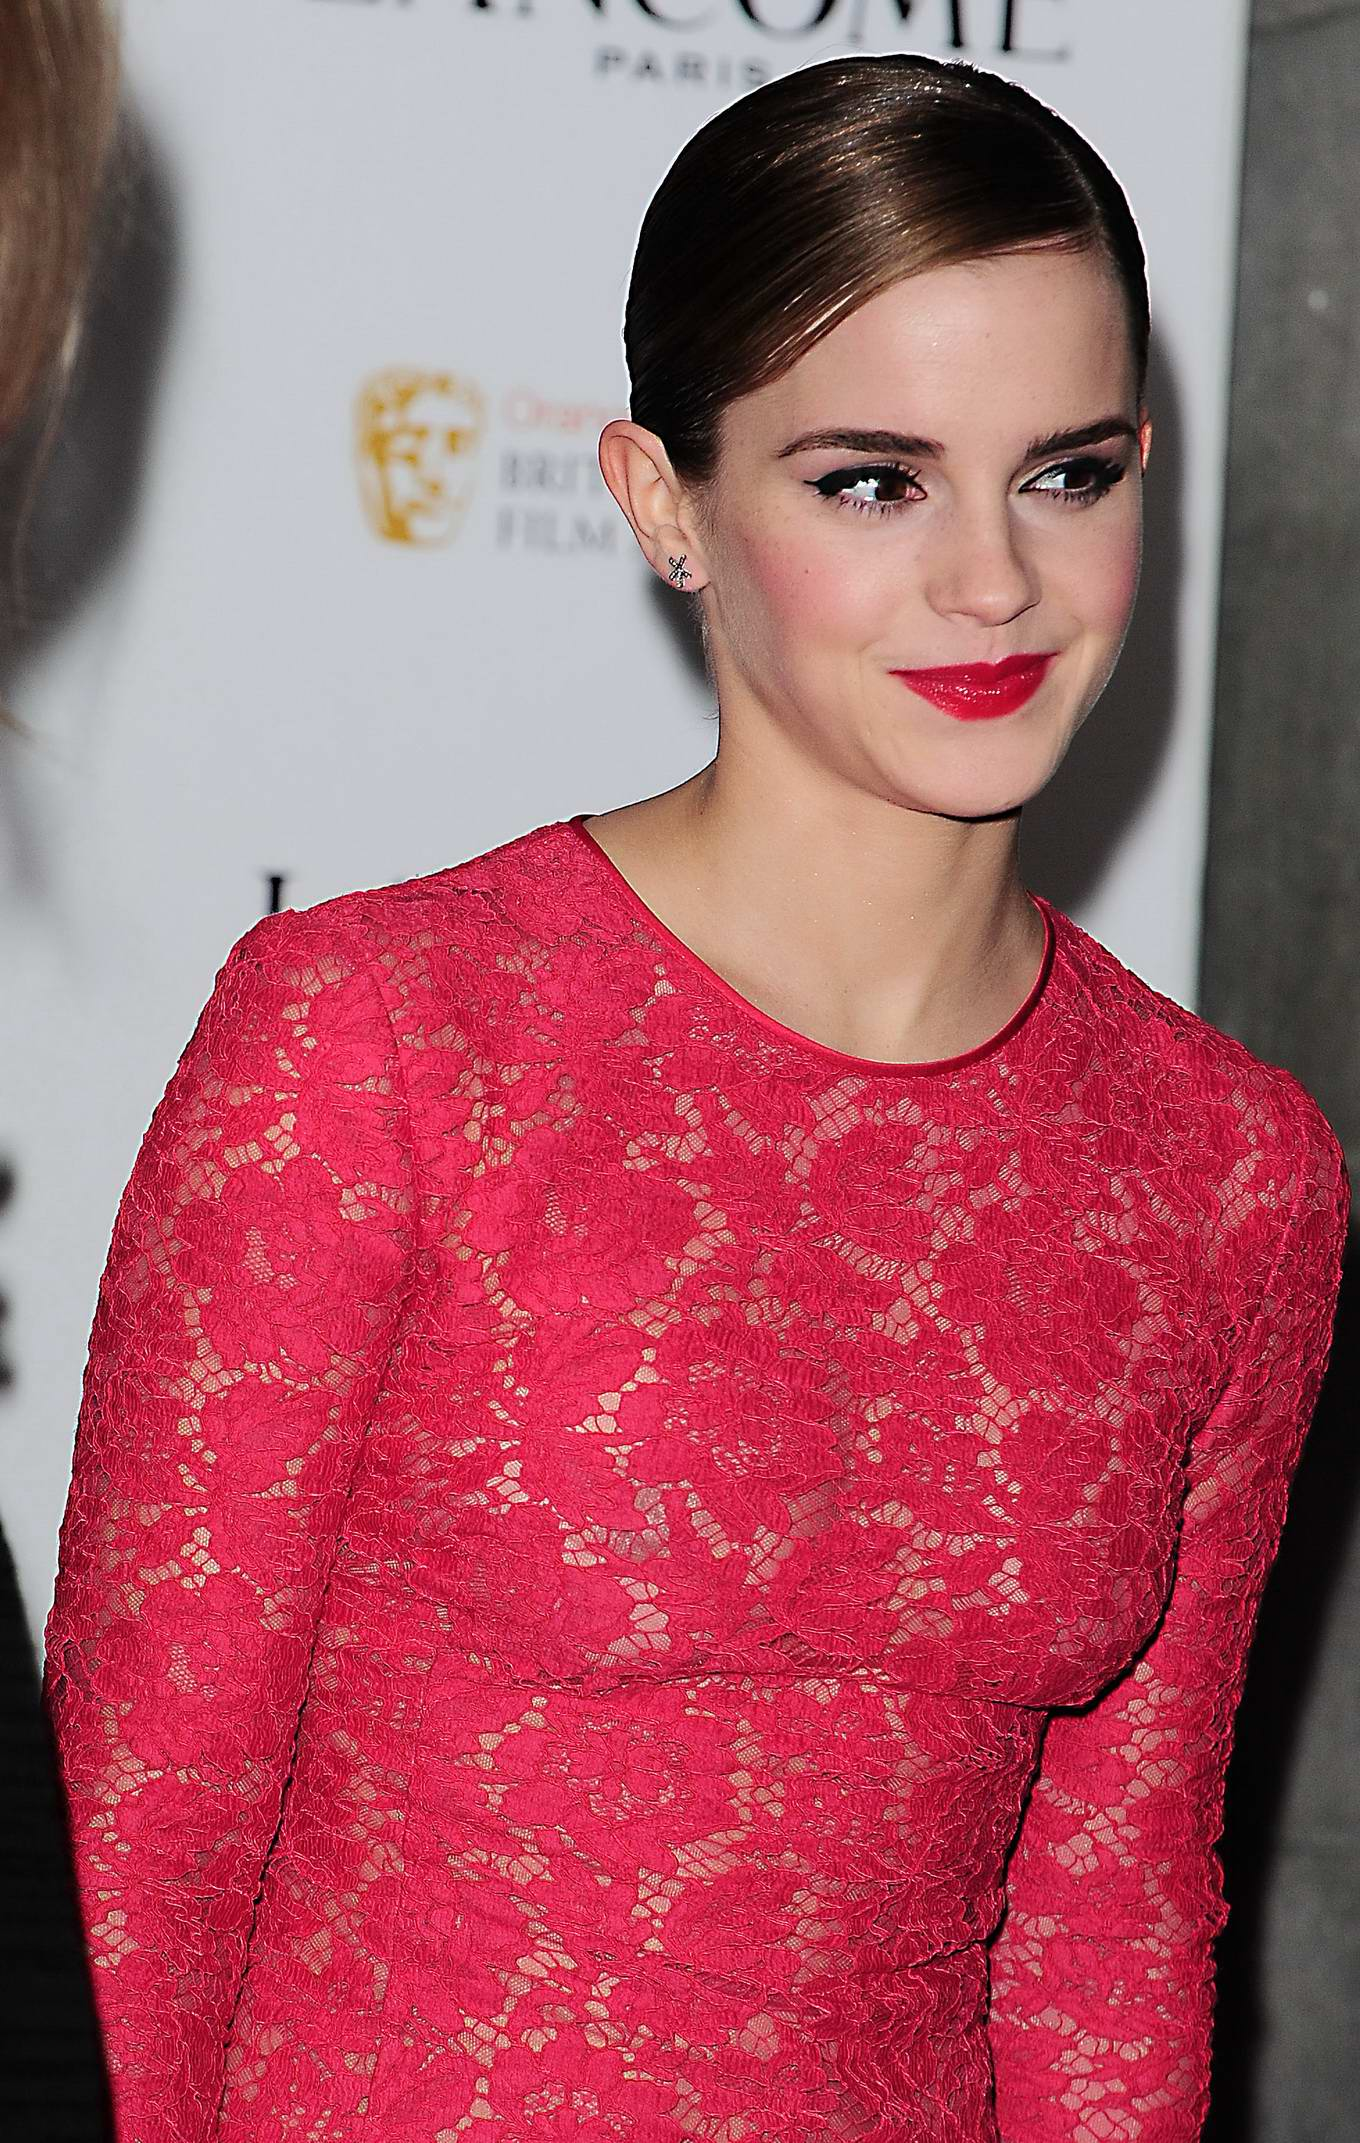 Emma Watson Braless Wearing Red See Through Lace Dress At Pre Bafta